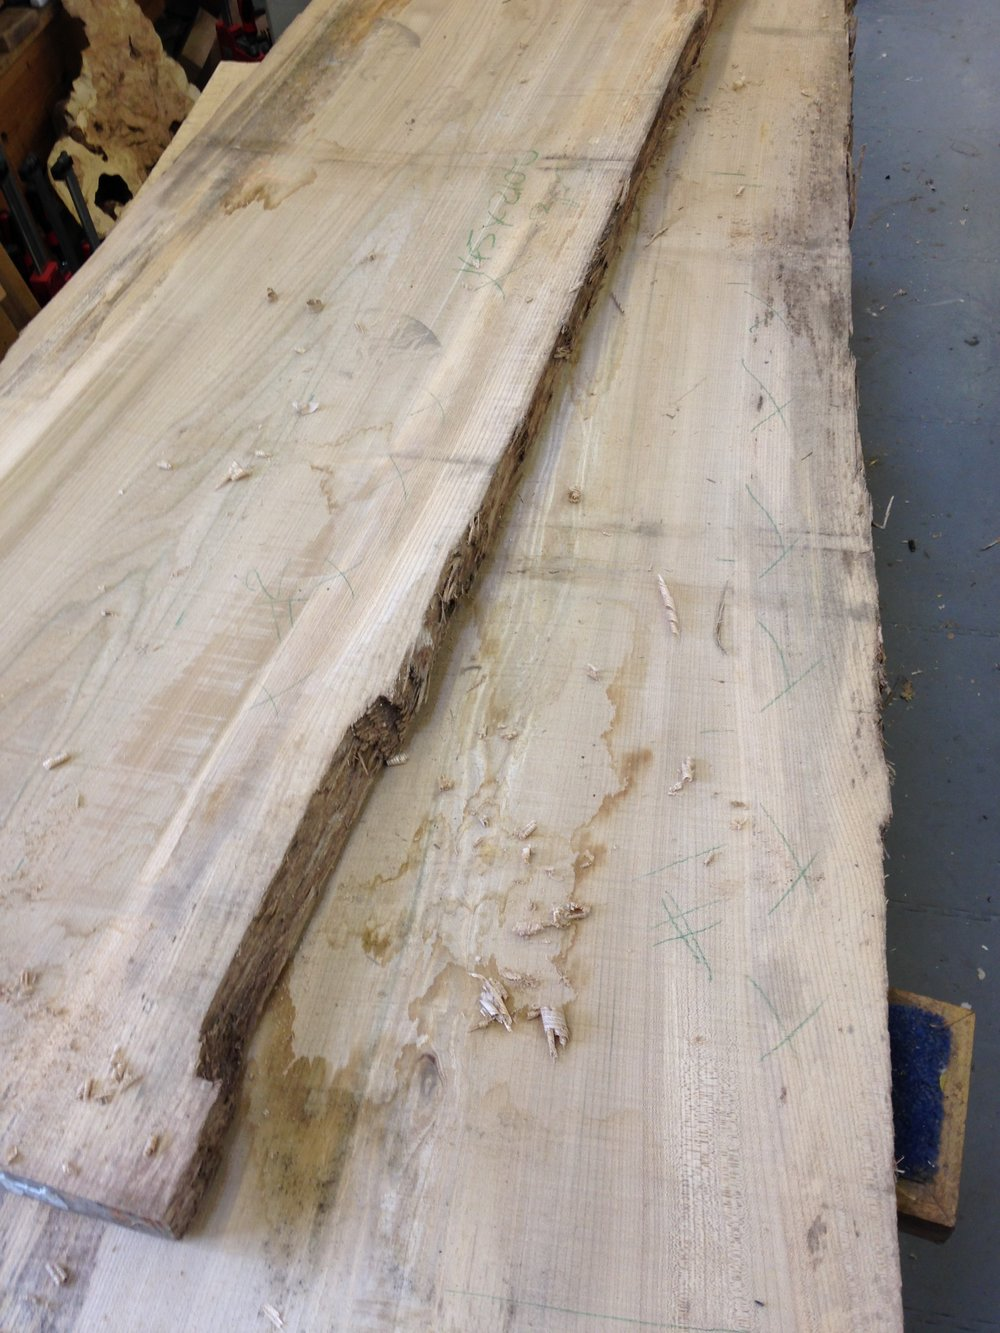 Drawer carcass will be cut from one continuous piece